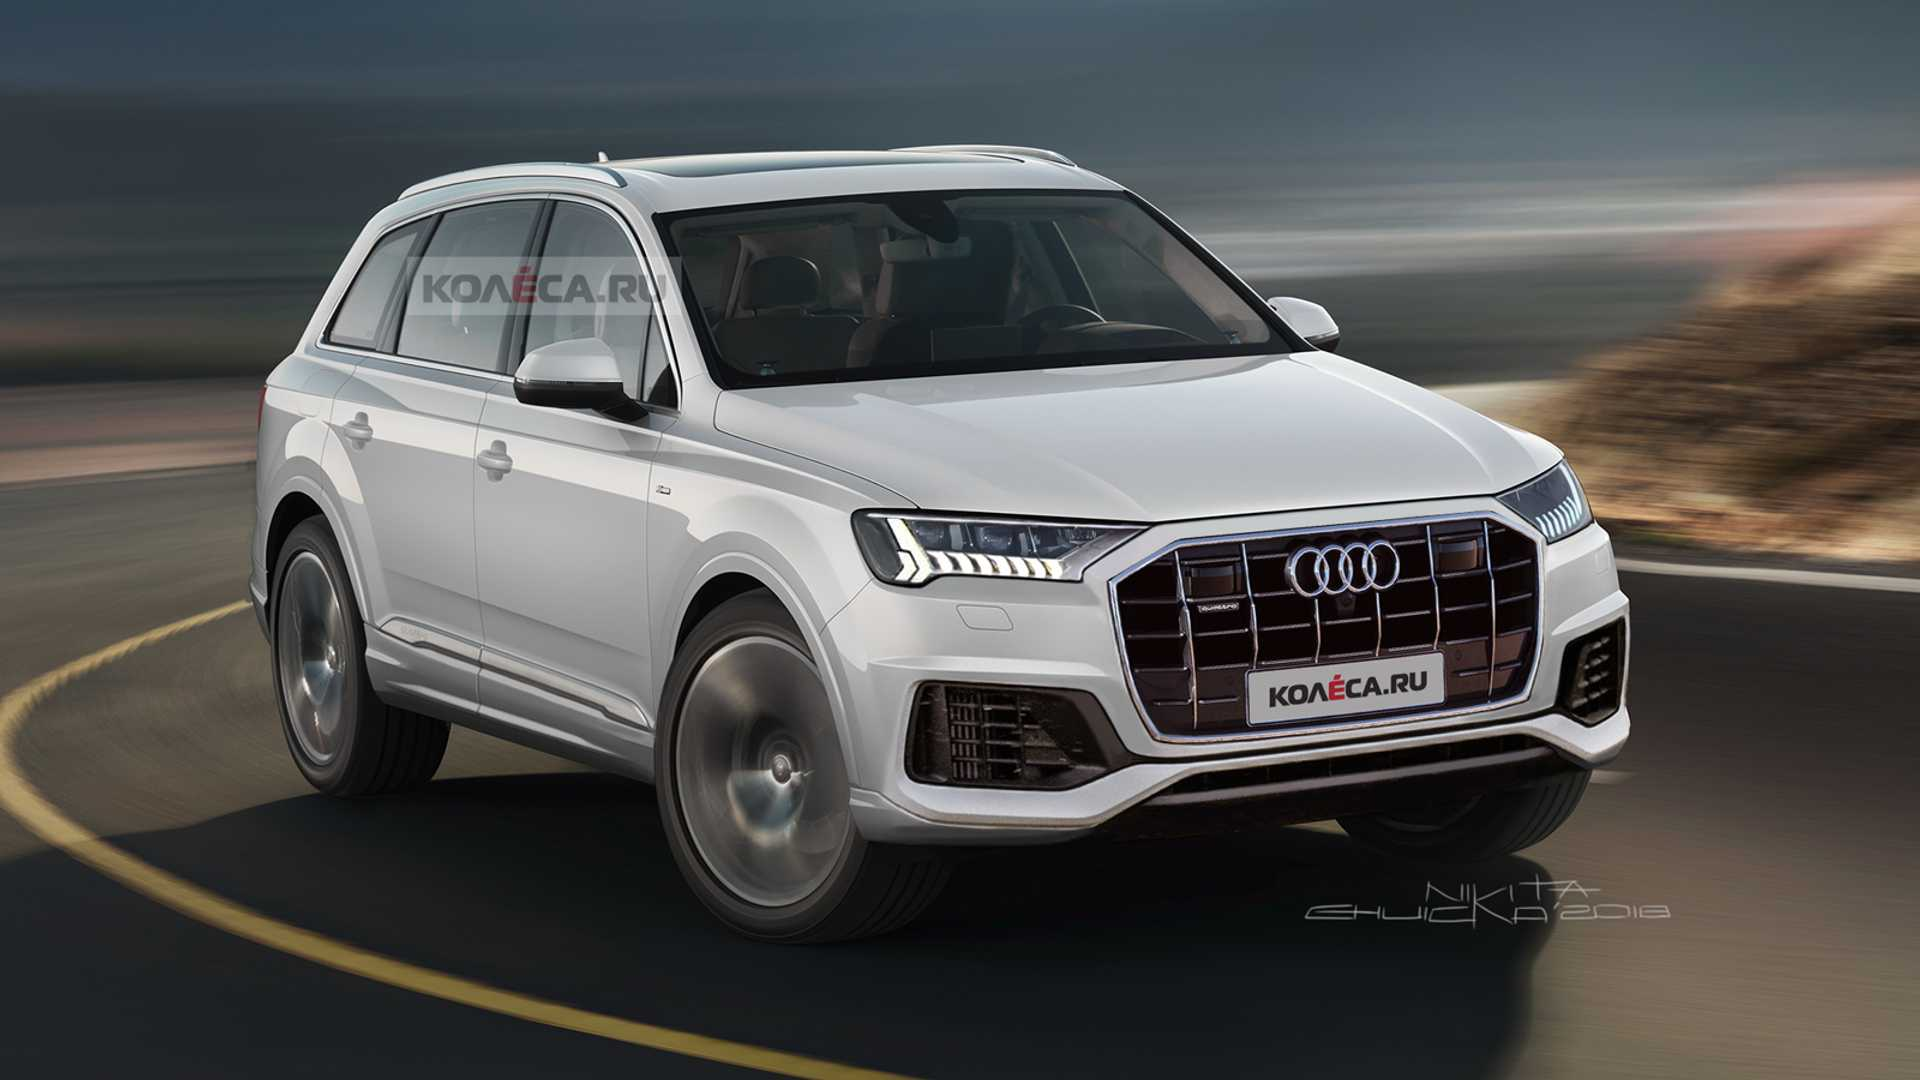 40 Best Audi Phev 2020 Rumors